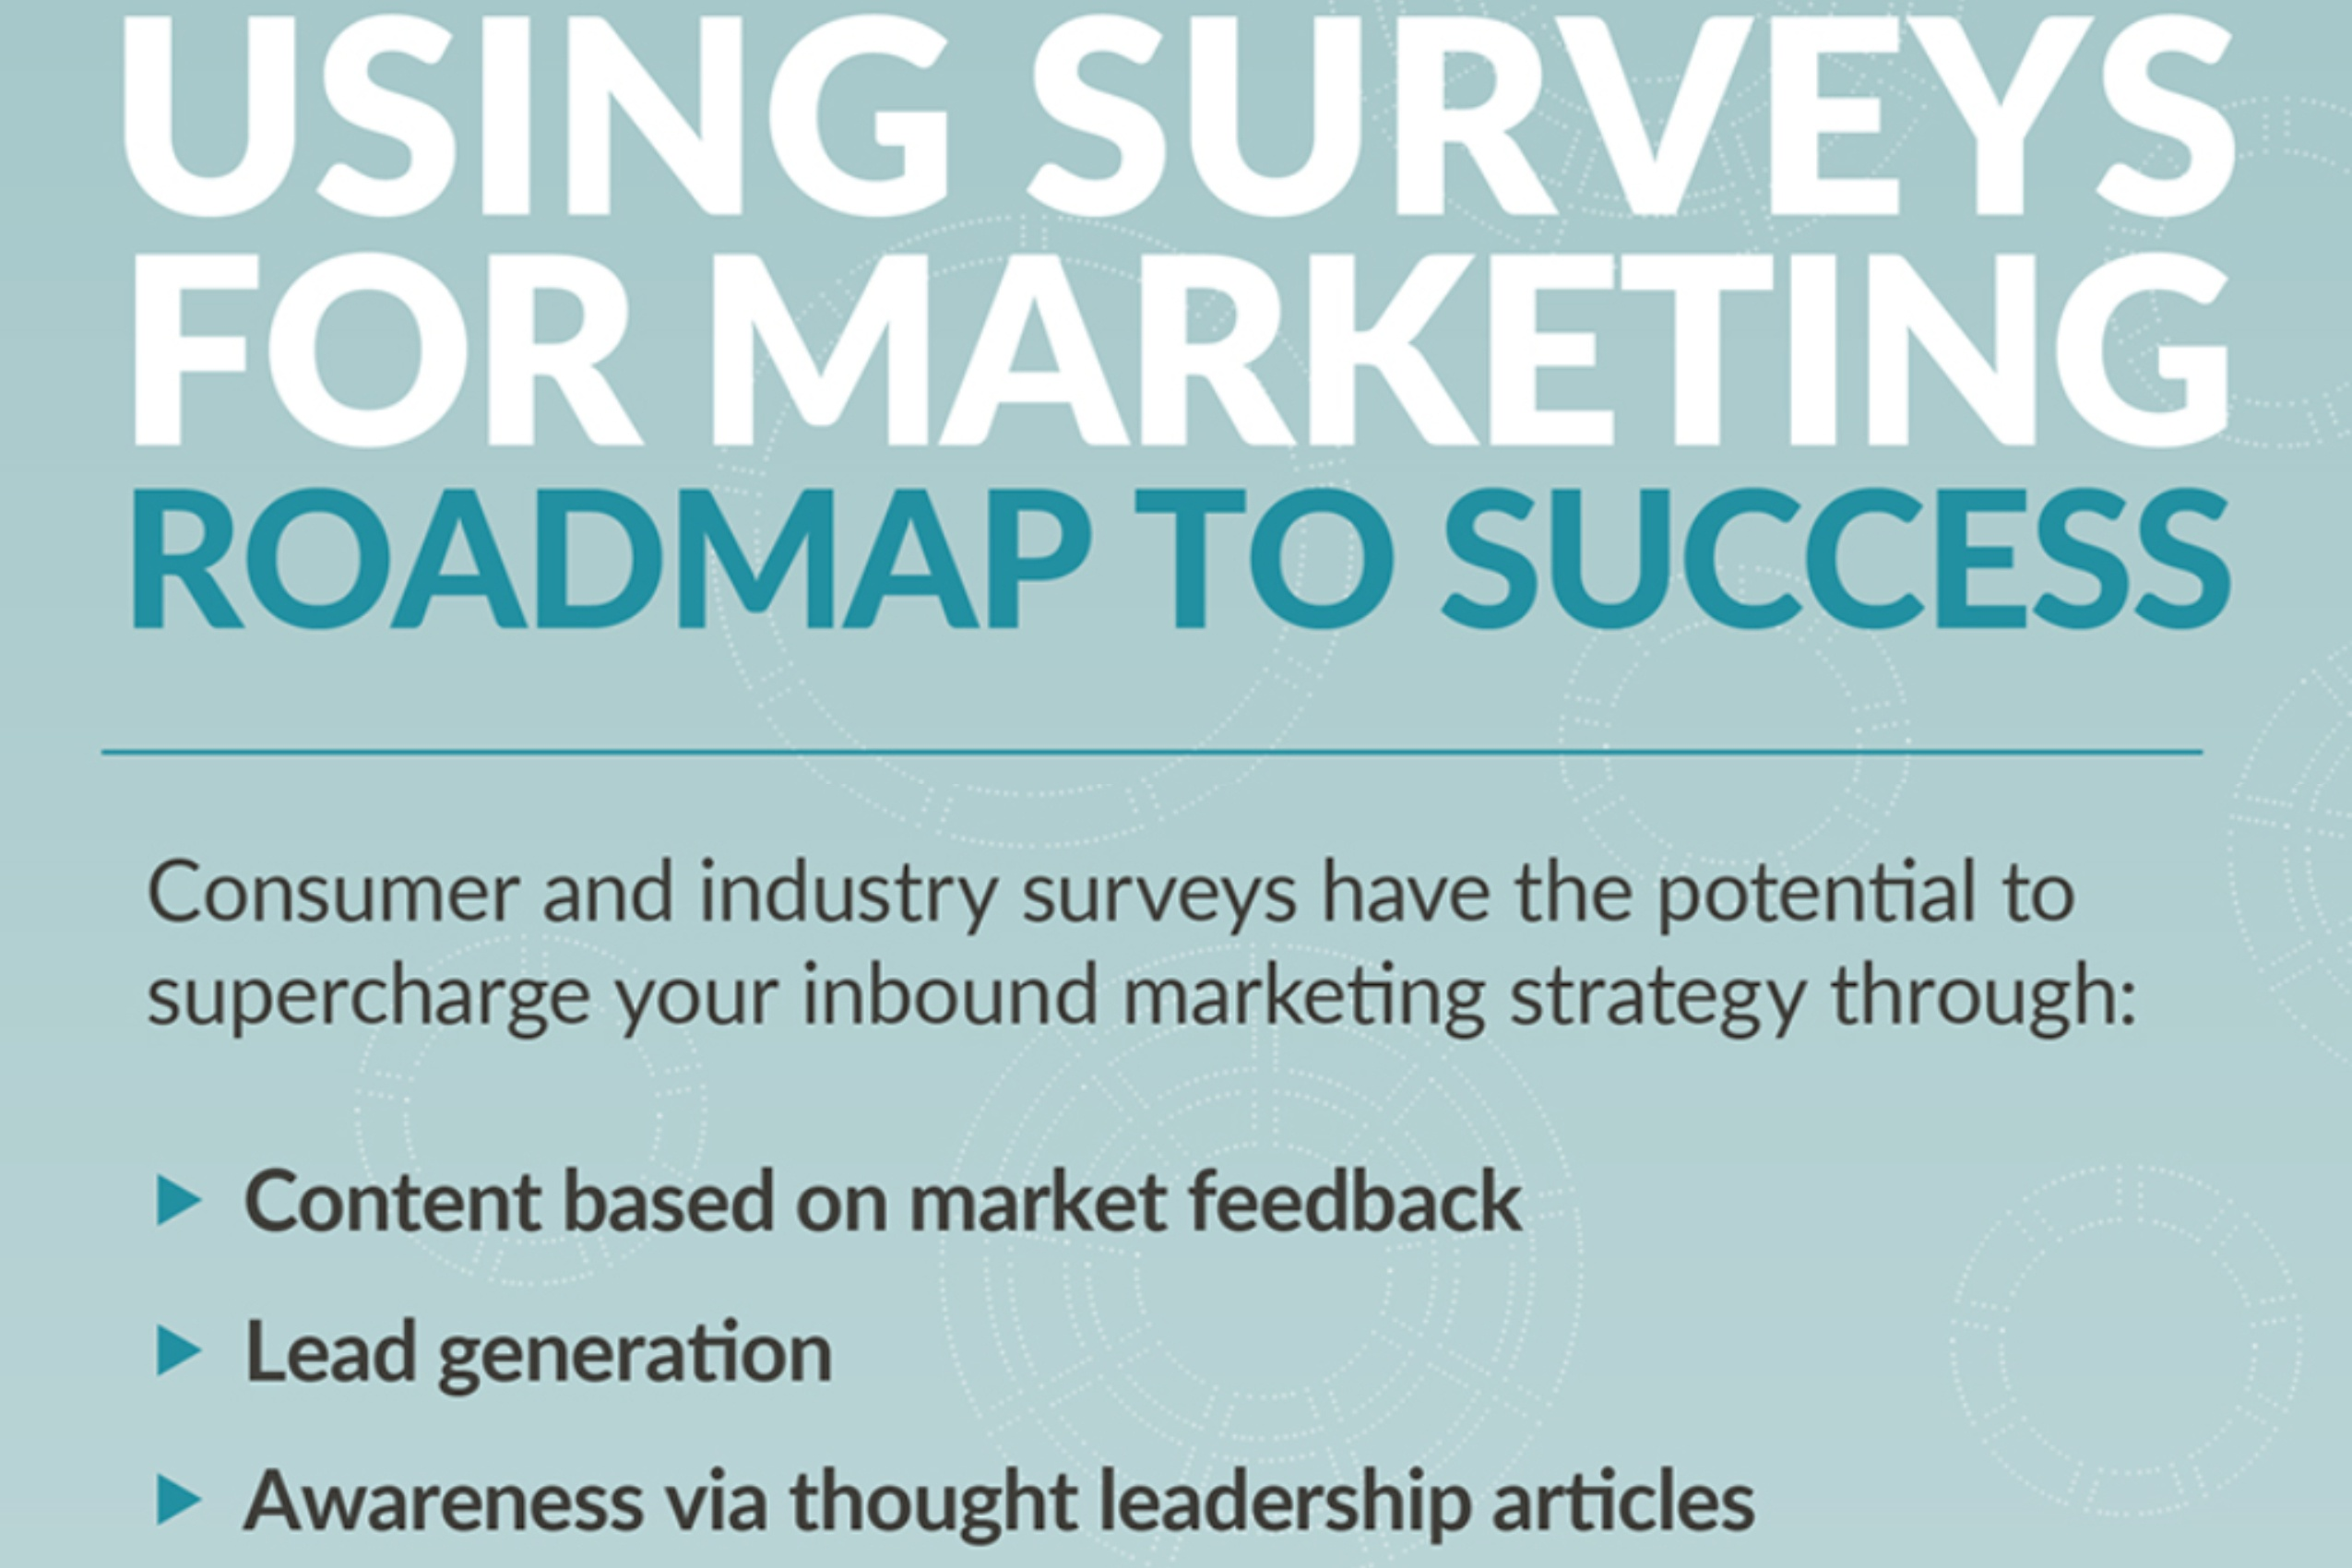 Using Surveys For Marketing_ Roadmap To Success (infographic)